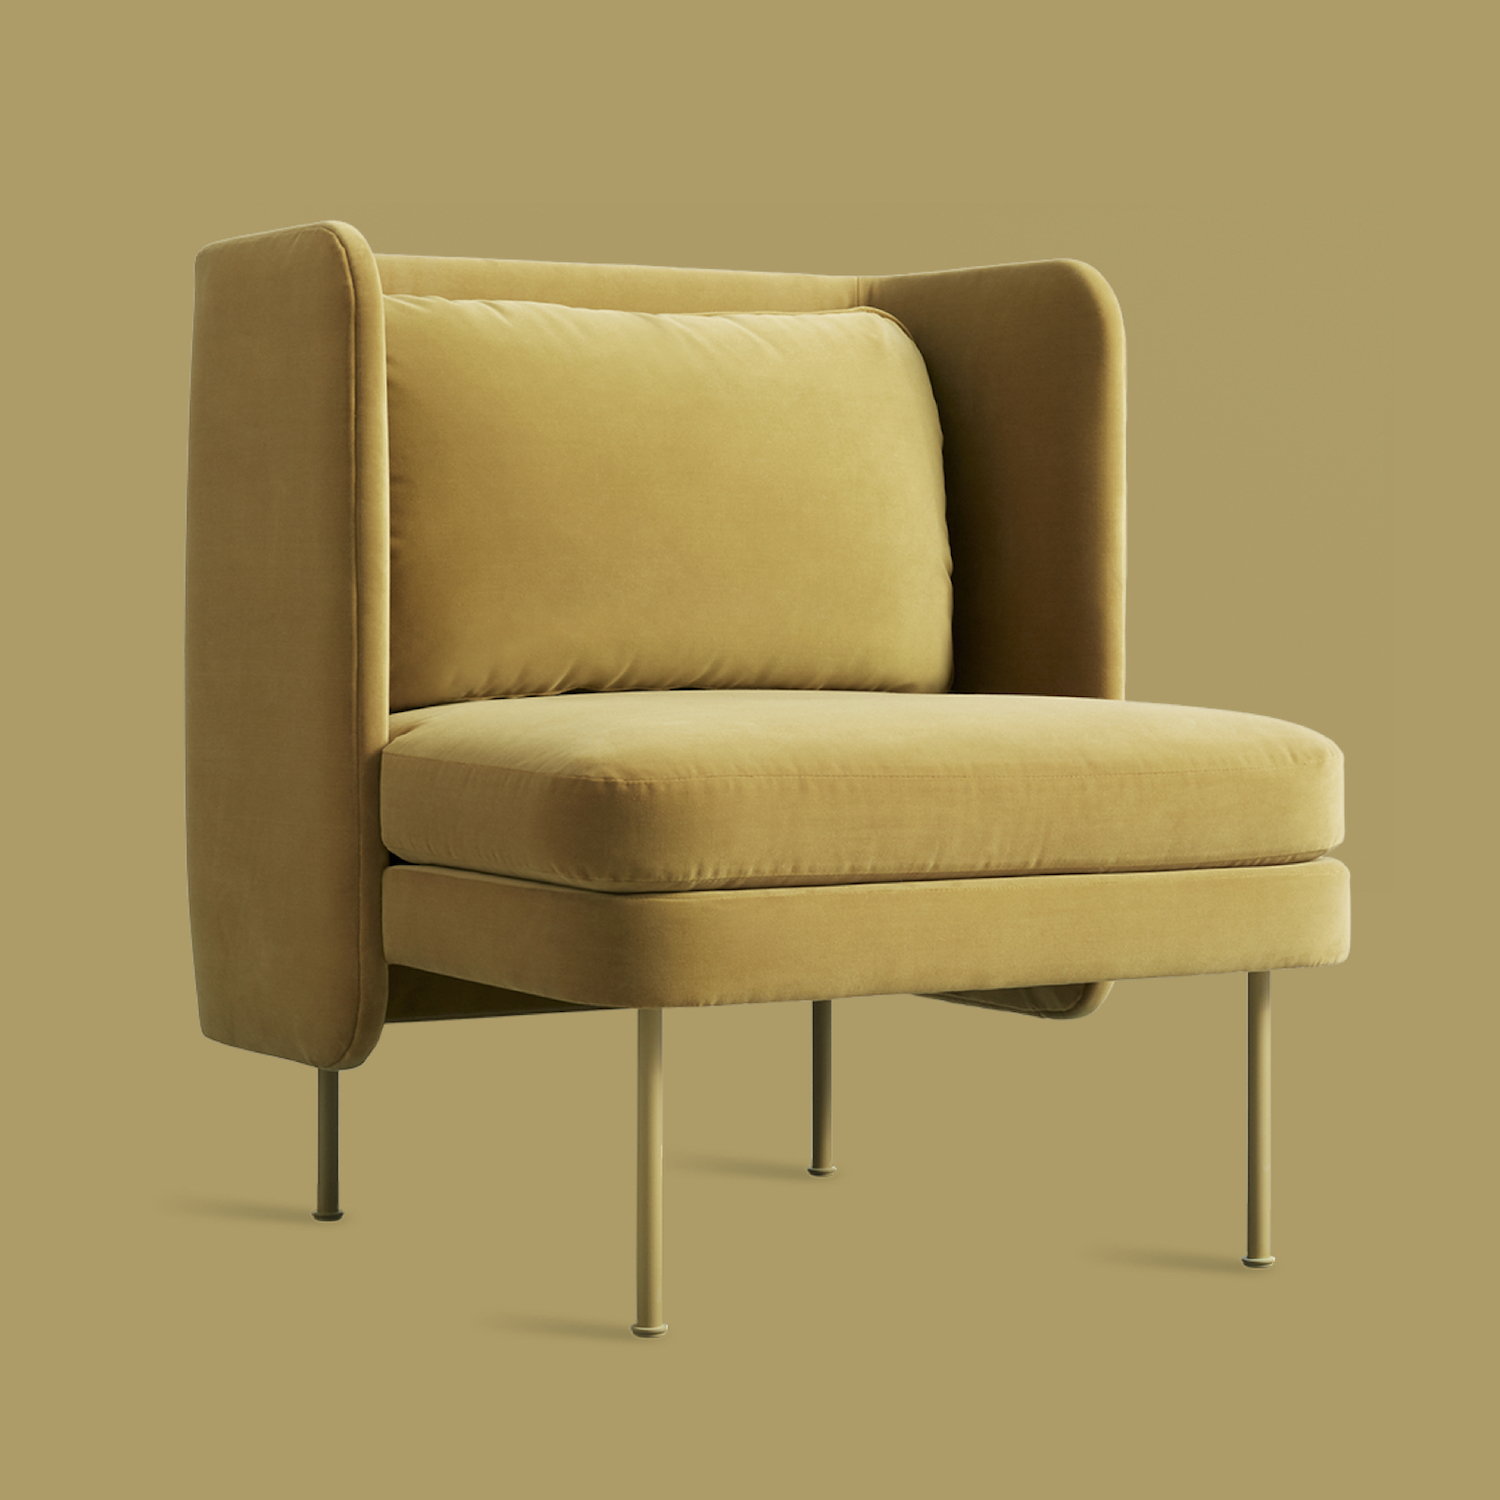 blu dot chairs high end folding lawn the designs our editors want in their homes right now surface on occasion of 5 000 gift card giveaway enter to win here share pieces they re currently coveting